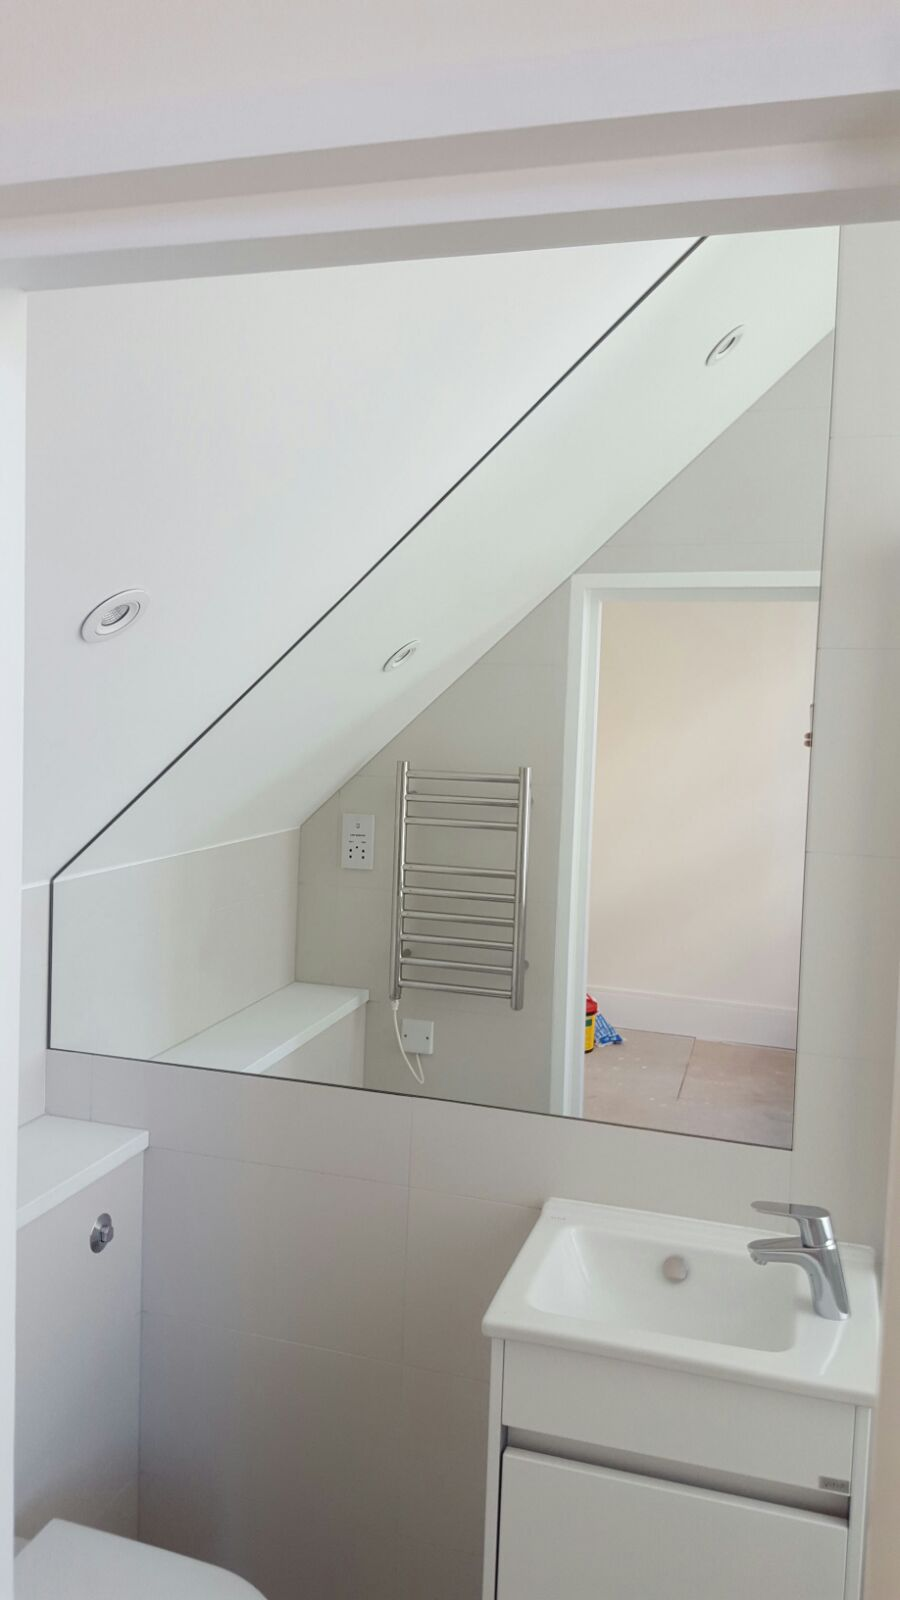 bathroom mirrors made to measure bespoke mirrors made to measure mirrors 22257 | 1bathroom